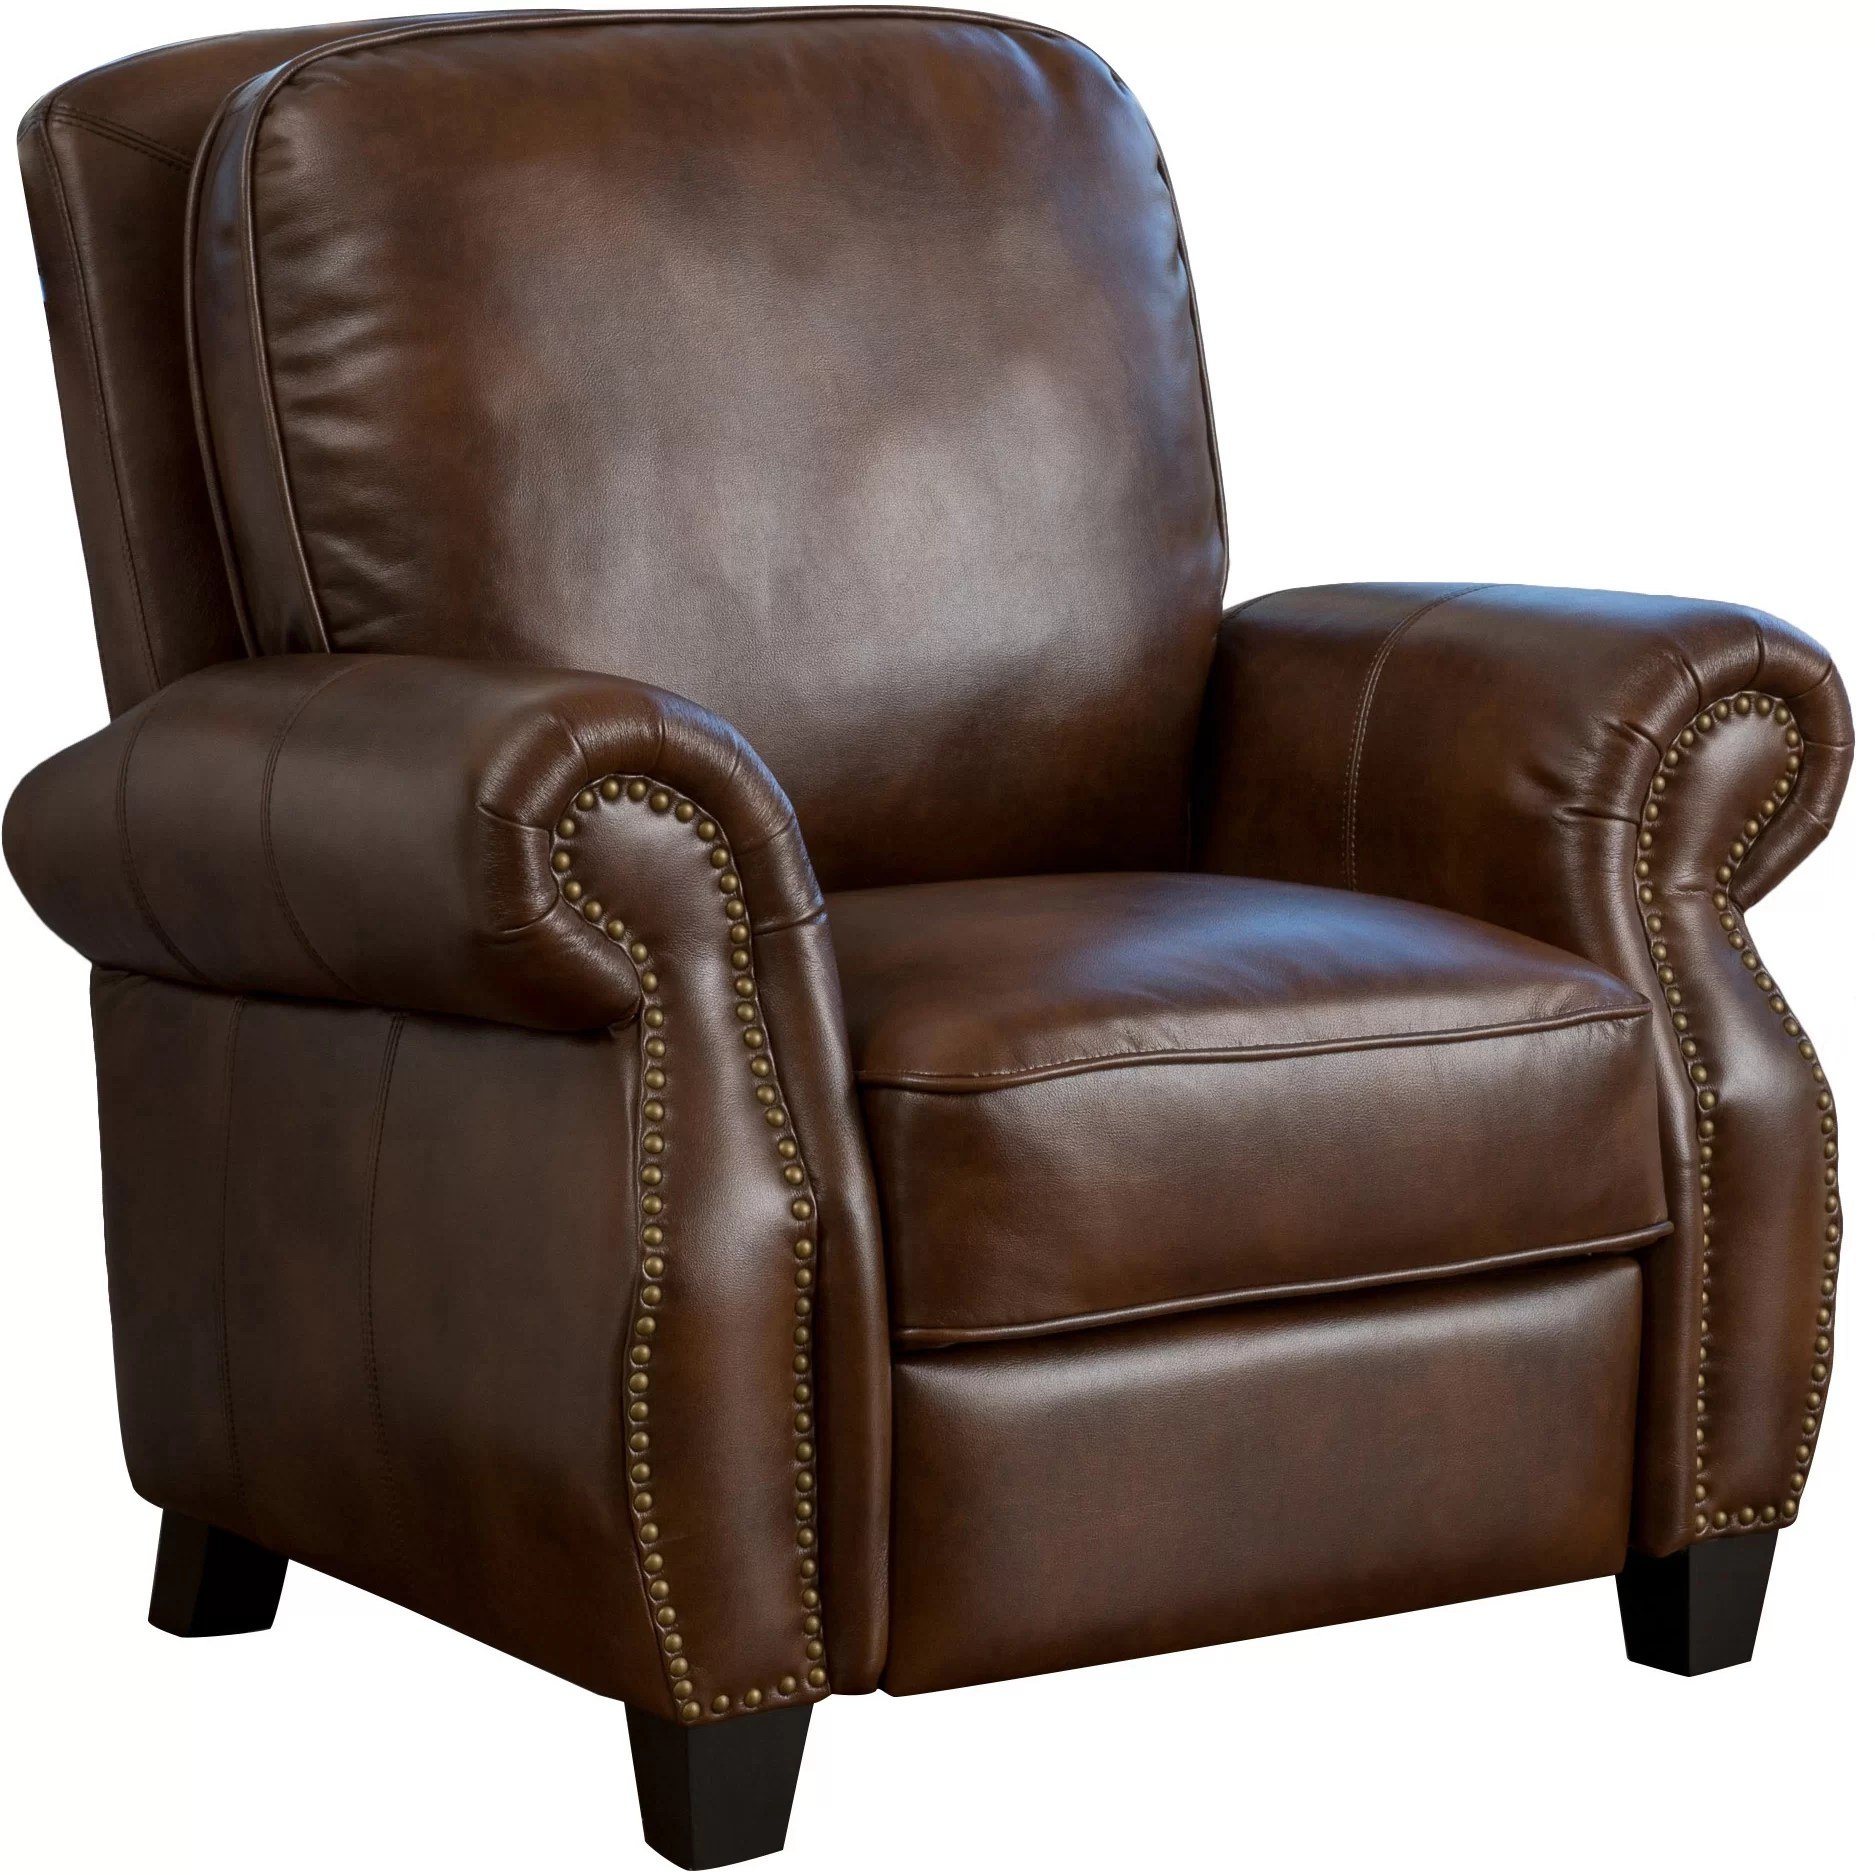 Leather Reclining Chair Three Posts Tully Faux Leather Recliner And Reviews Wayfair